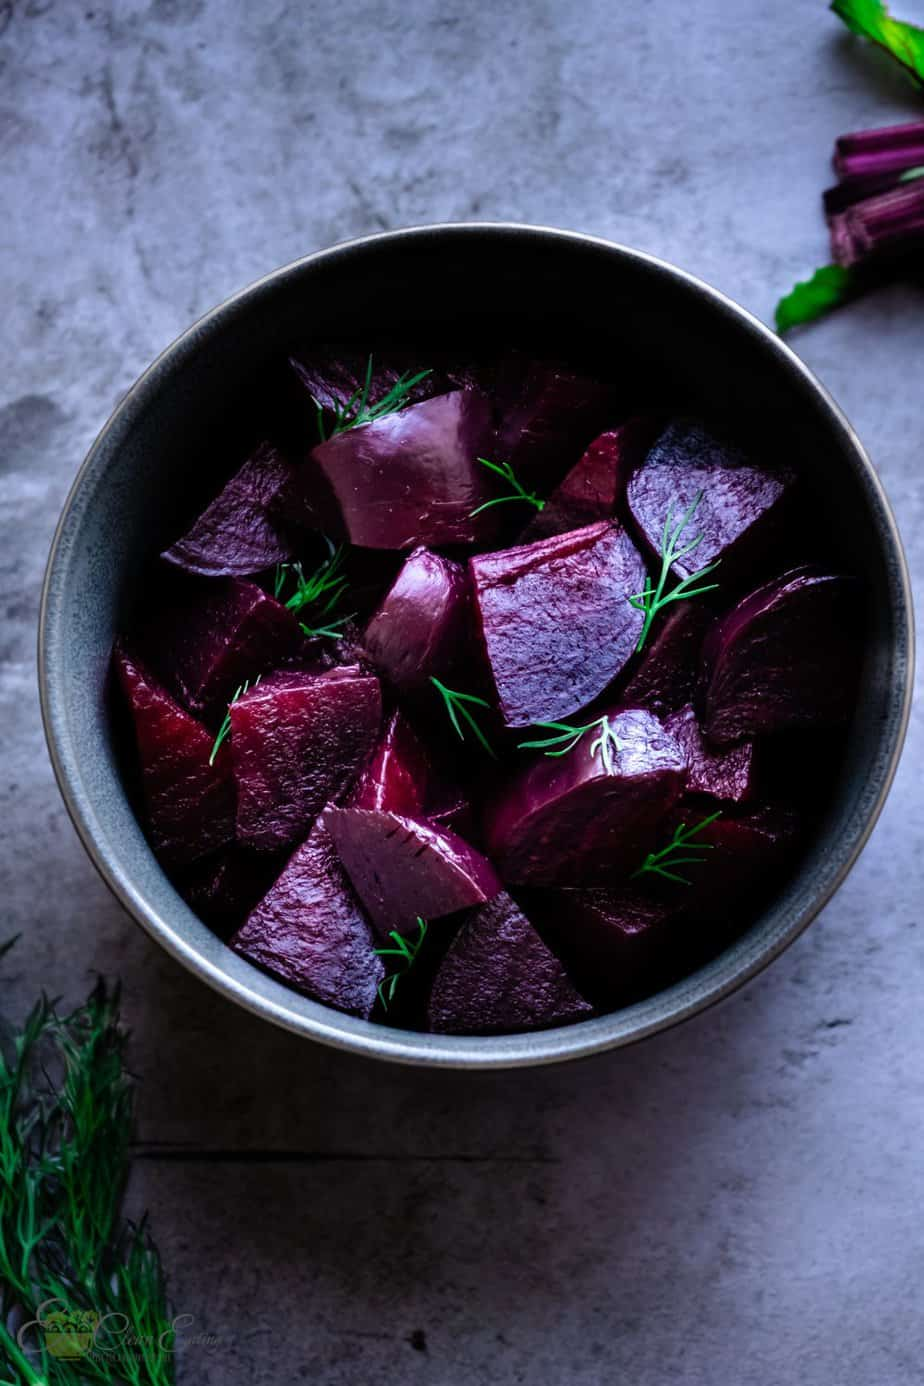 chopped pressure cooked beets in the instant pot with some dill sprinkle on top.